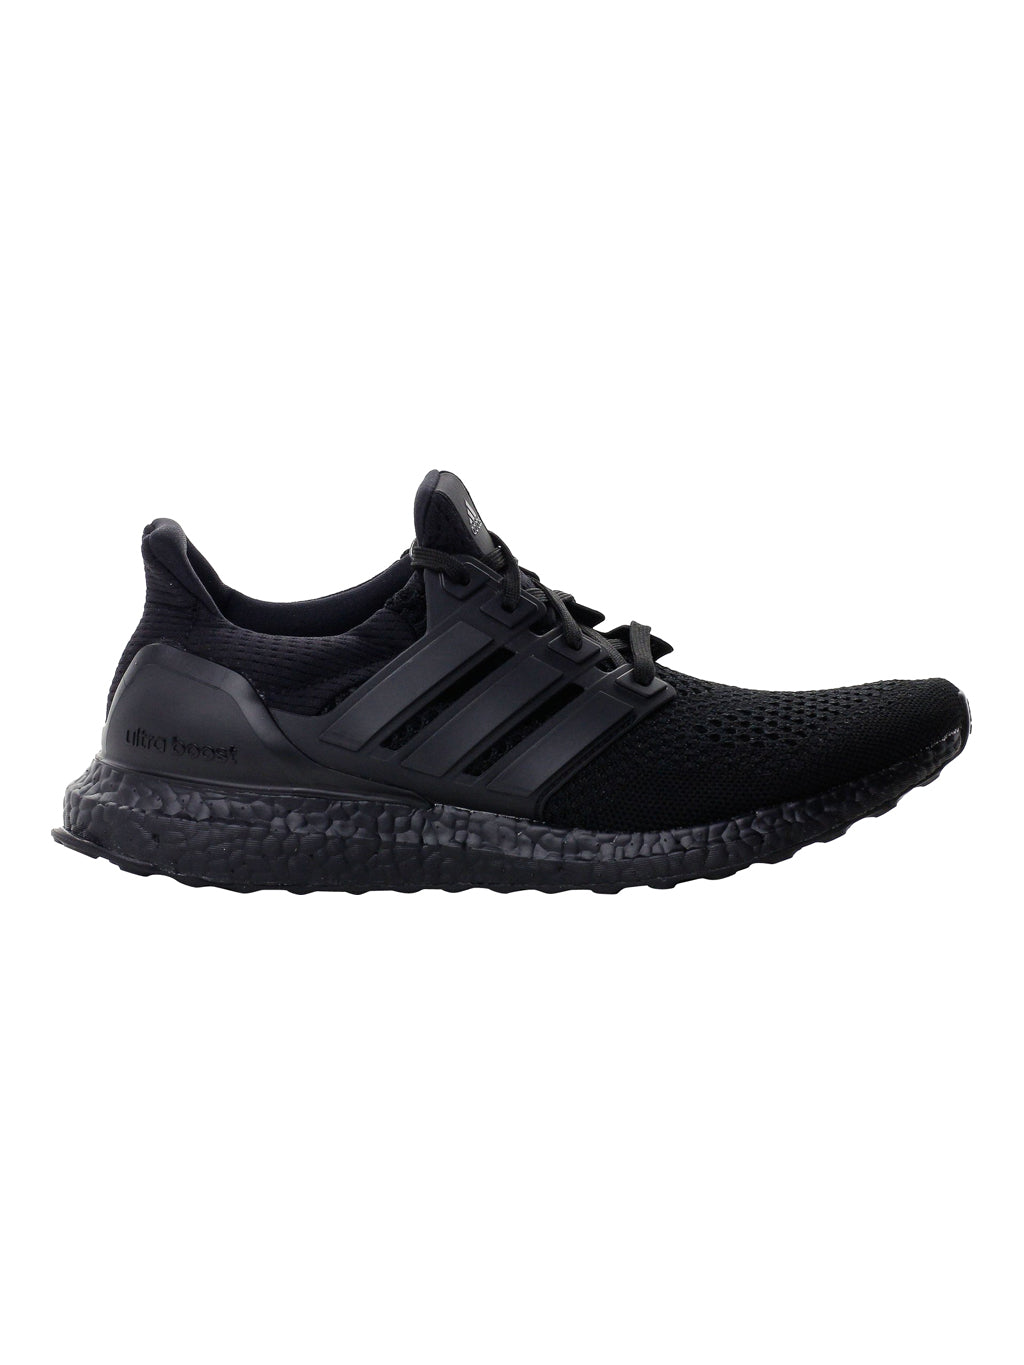 Black Triple Prime knit PK Ultraboost Shoes